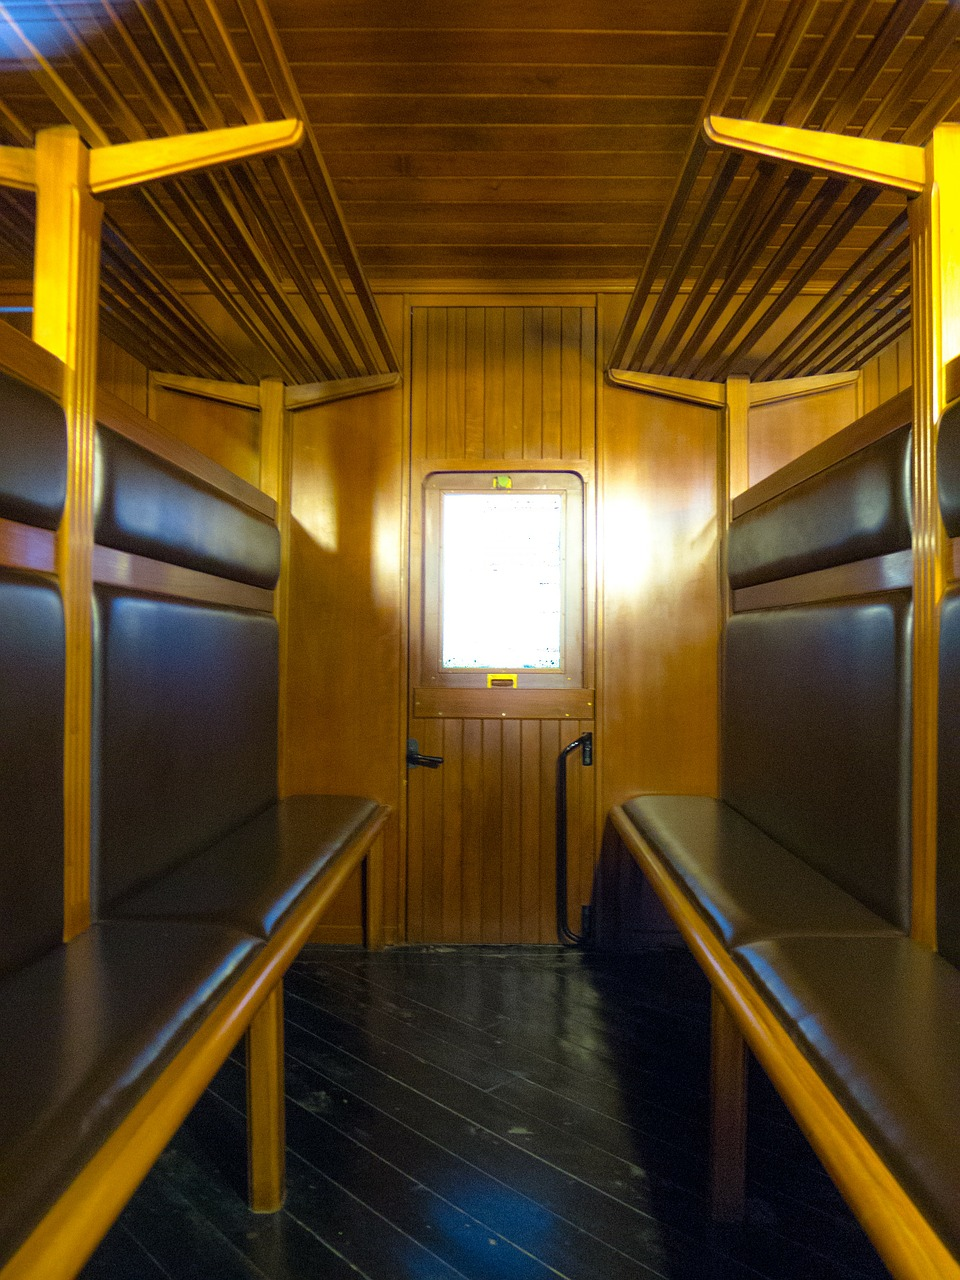 cabin wagon compartment free photo